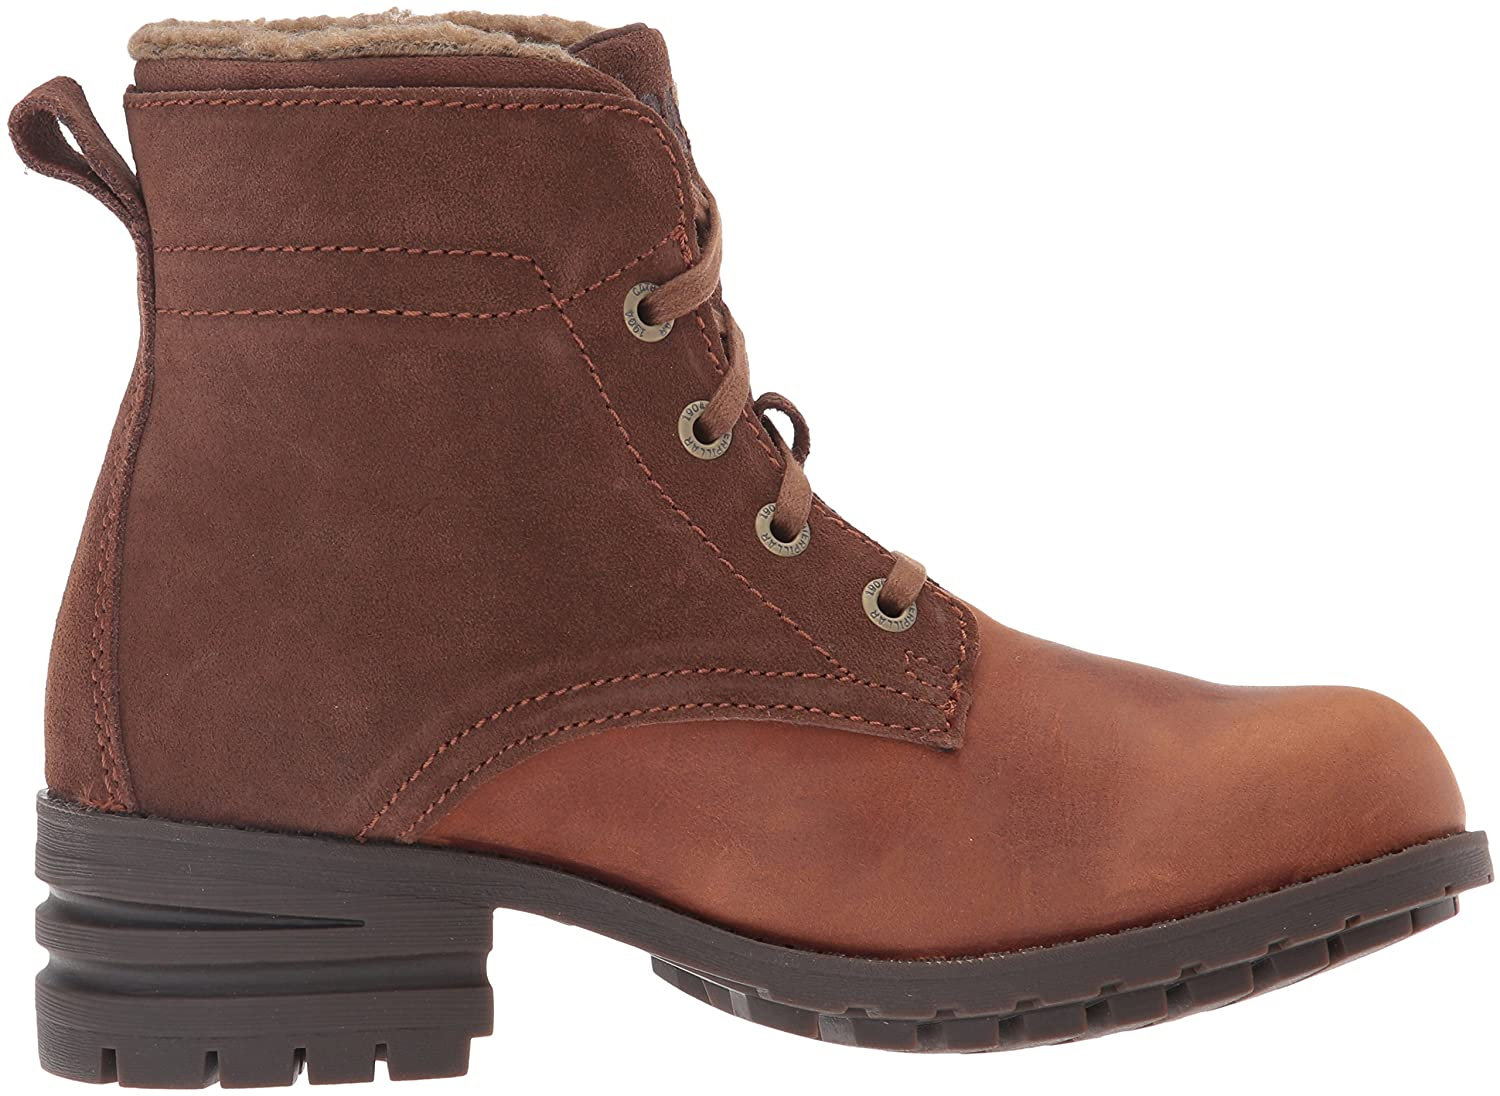 Caterpillar Women's Teegan Boot B01A63XUXY 7 M US|Womens Rust